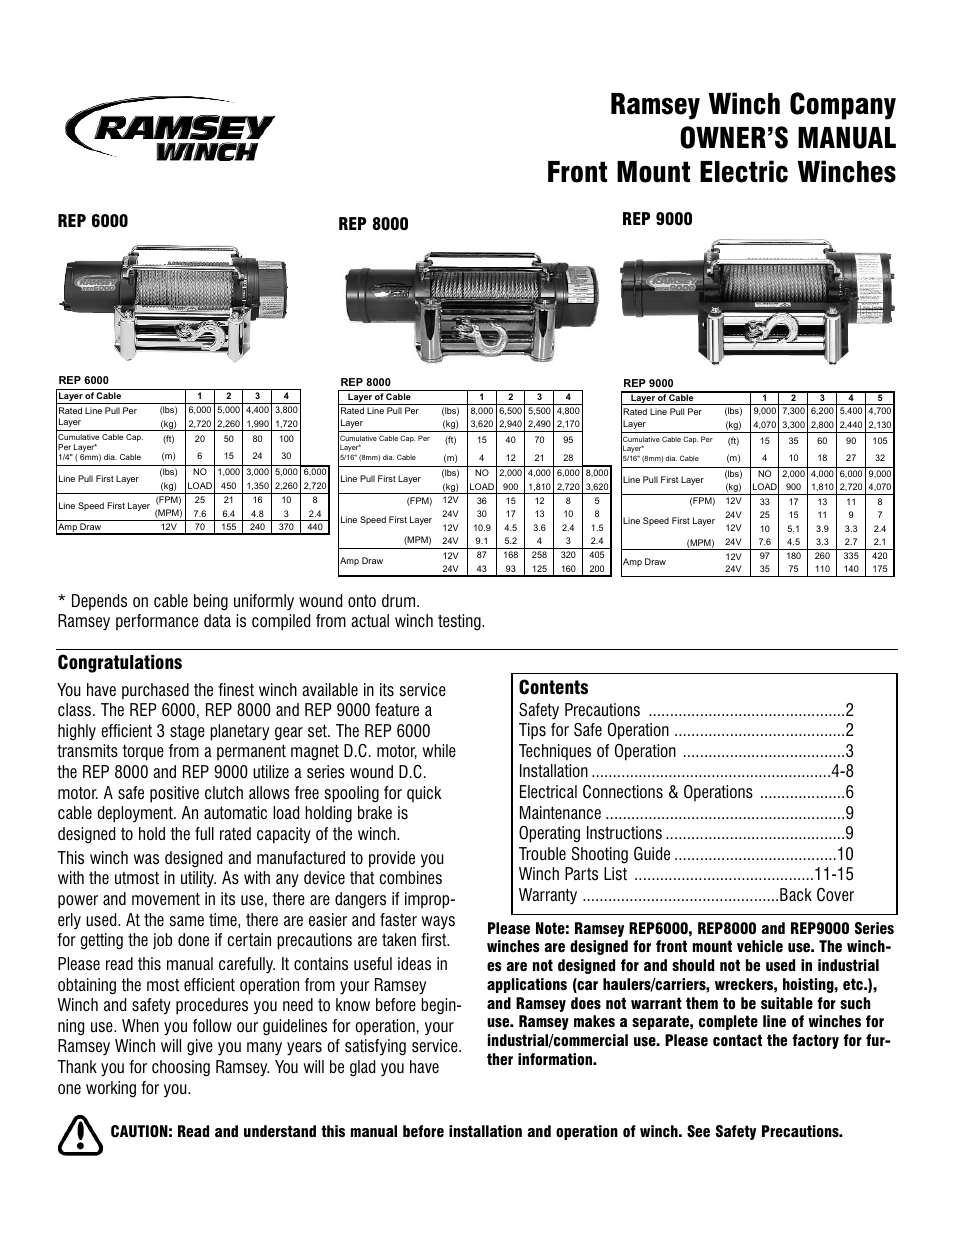 ramsey winch rep 6000_8000_9000 current page1?resize=665%2C861 ramsey winch solenoid wiring diagram double 4 wire solenoid ramsey rep 8000 solenoid diagram at reclaimingppi.co